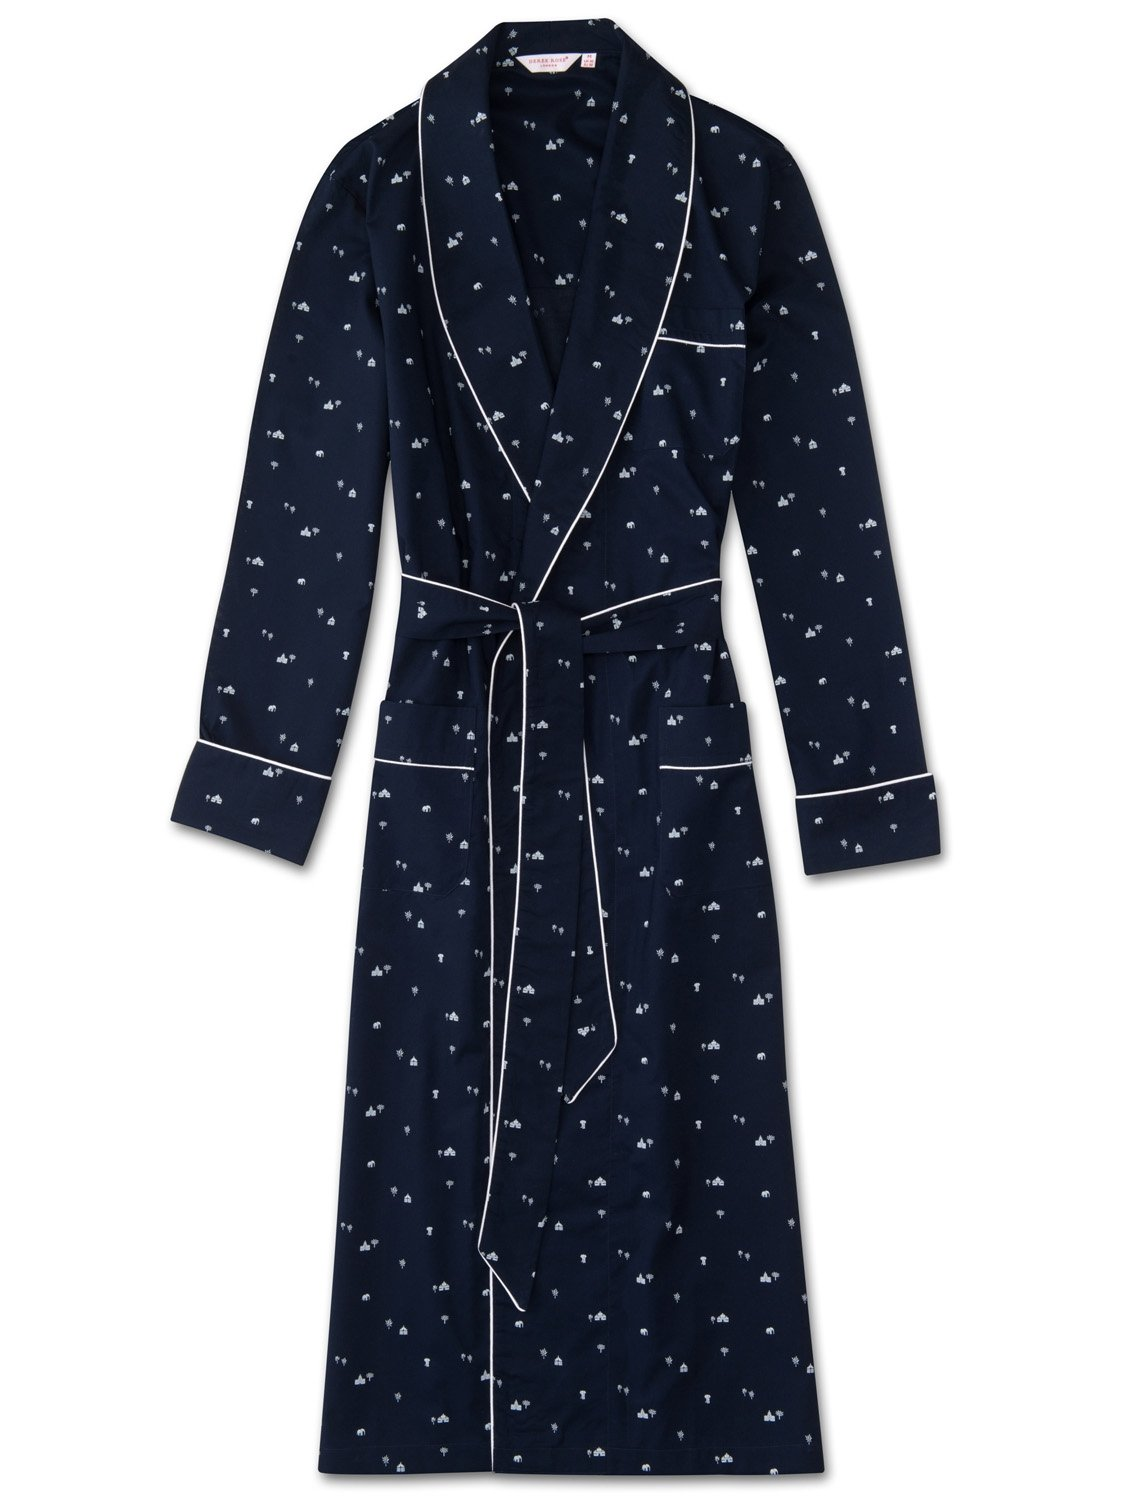 Men's Piped Dressing Gown Nelson 62 Cotton Batiste Navy